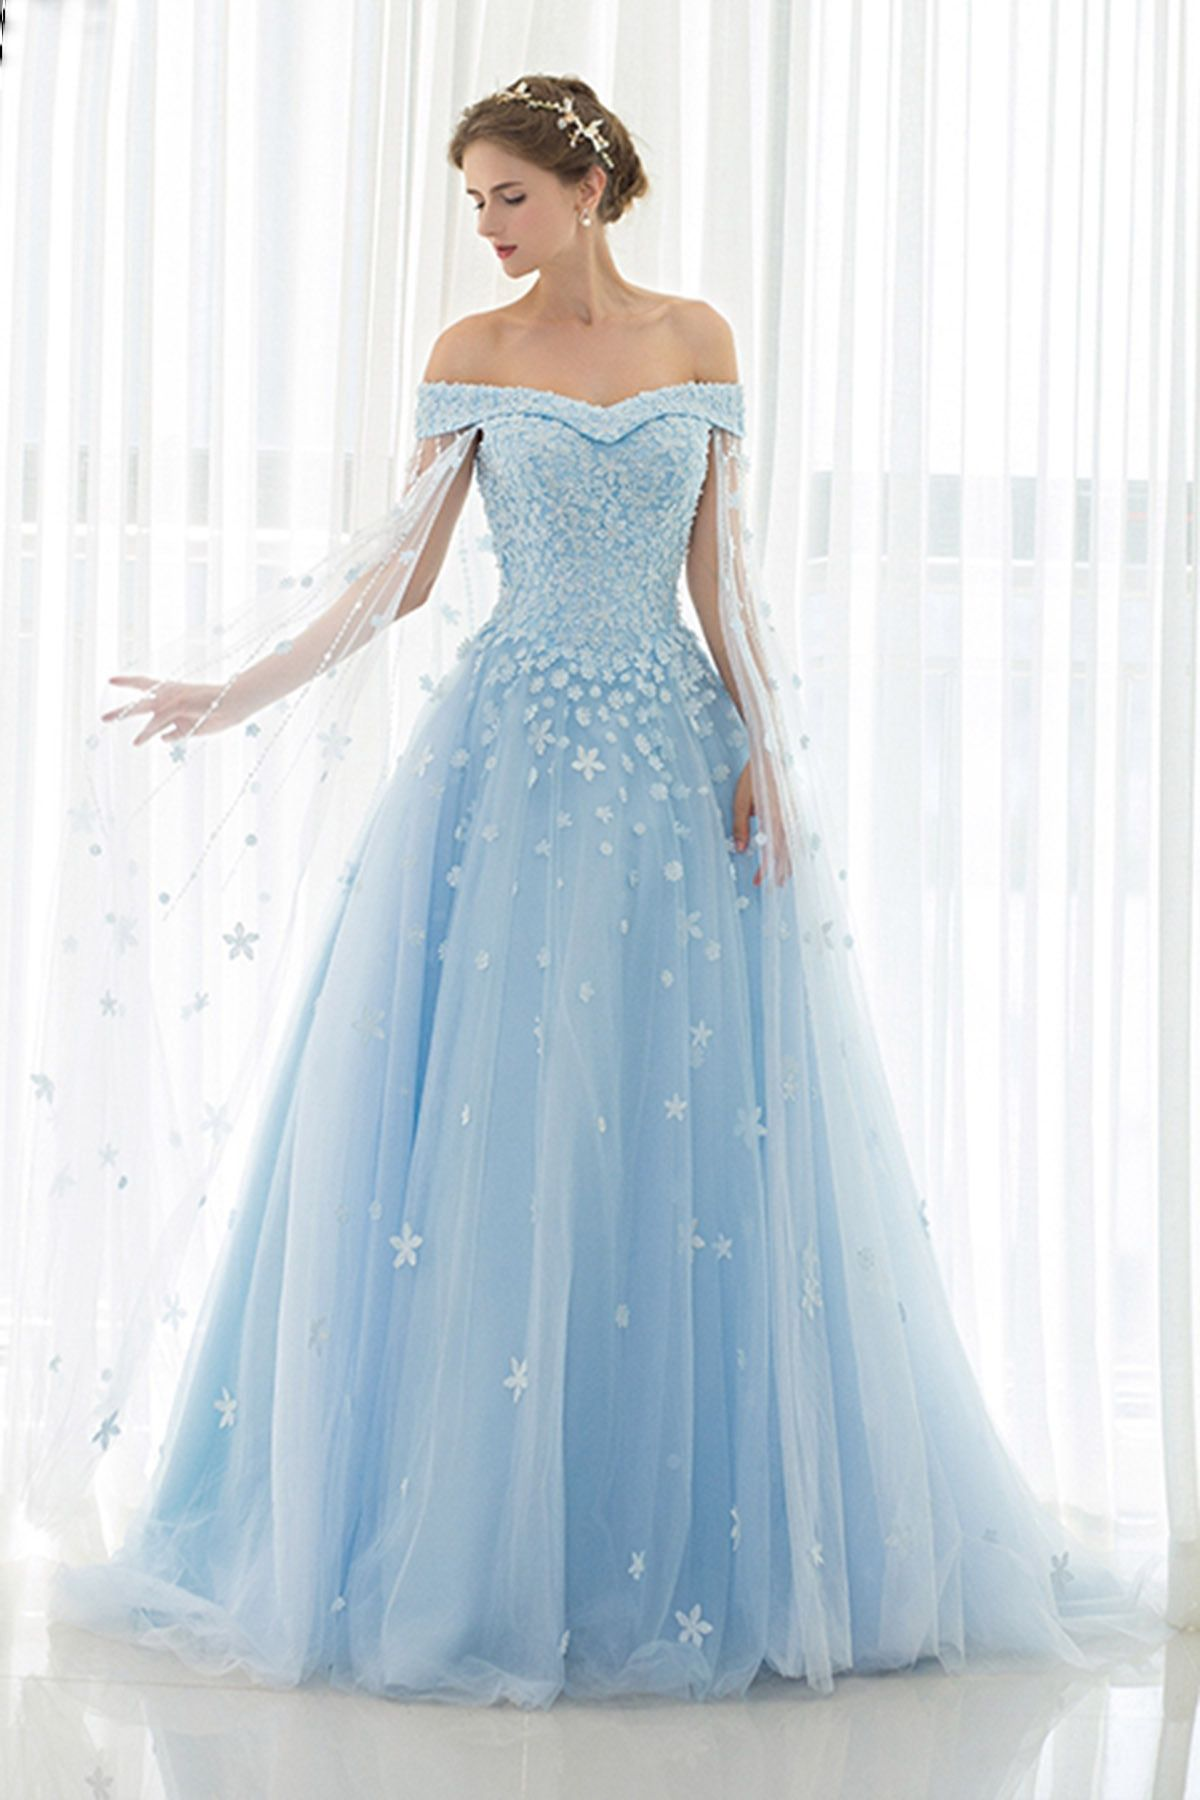 ice blue tulle off shoulder dress for cinderella wedding